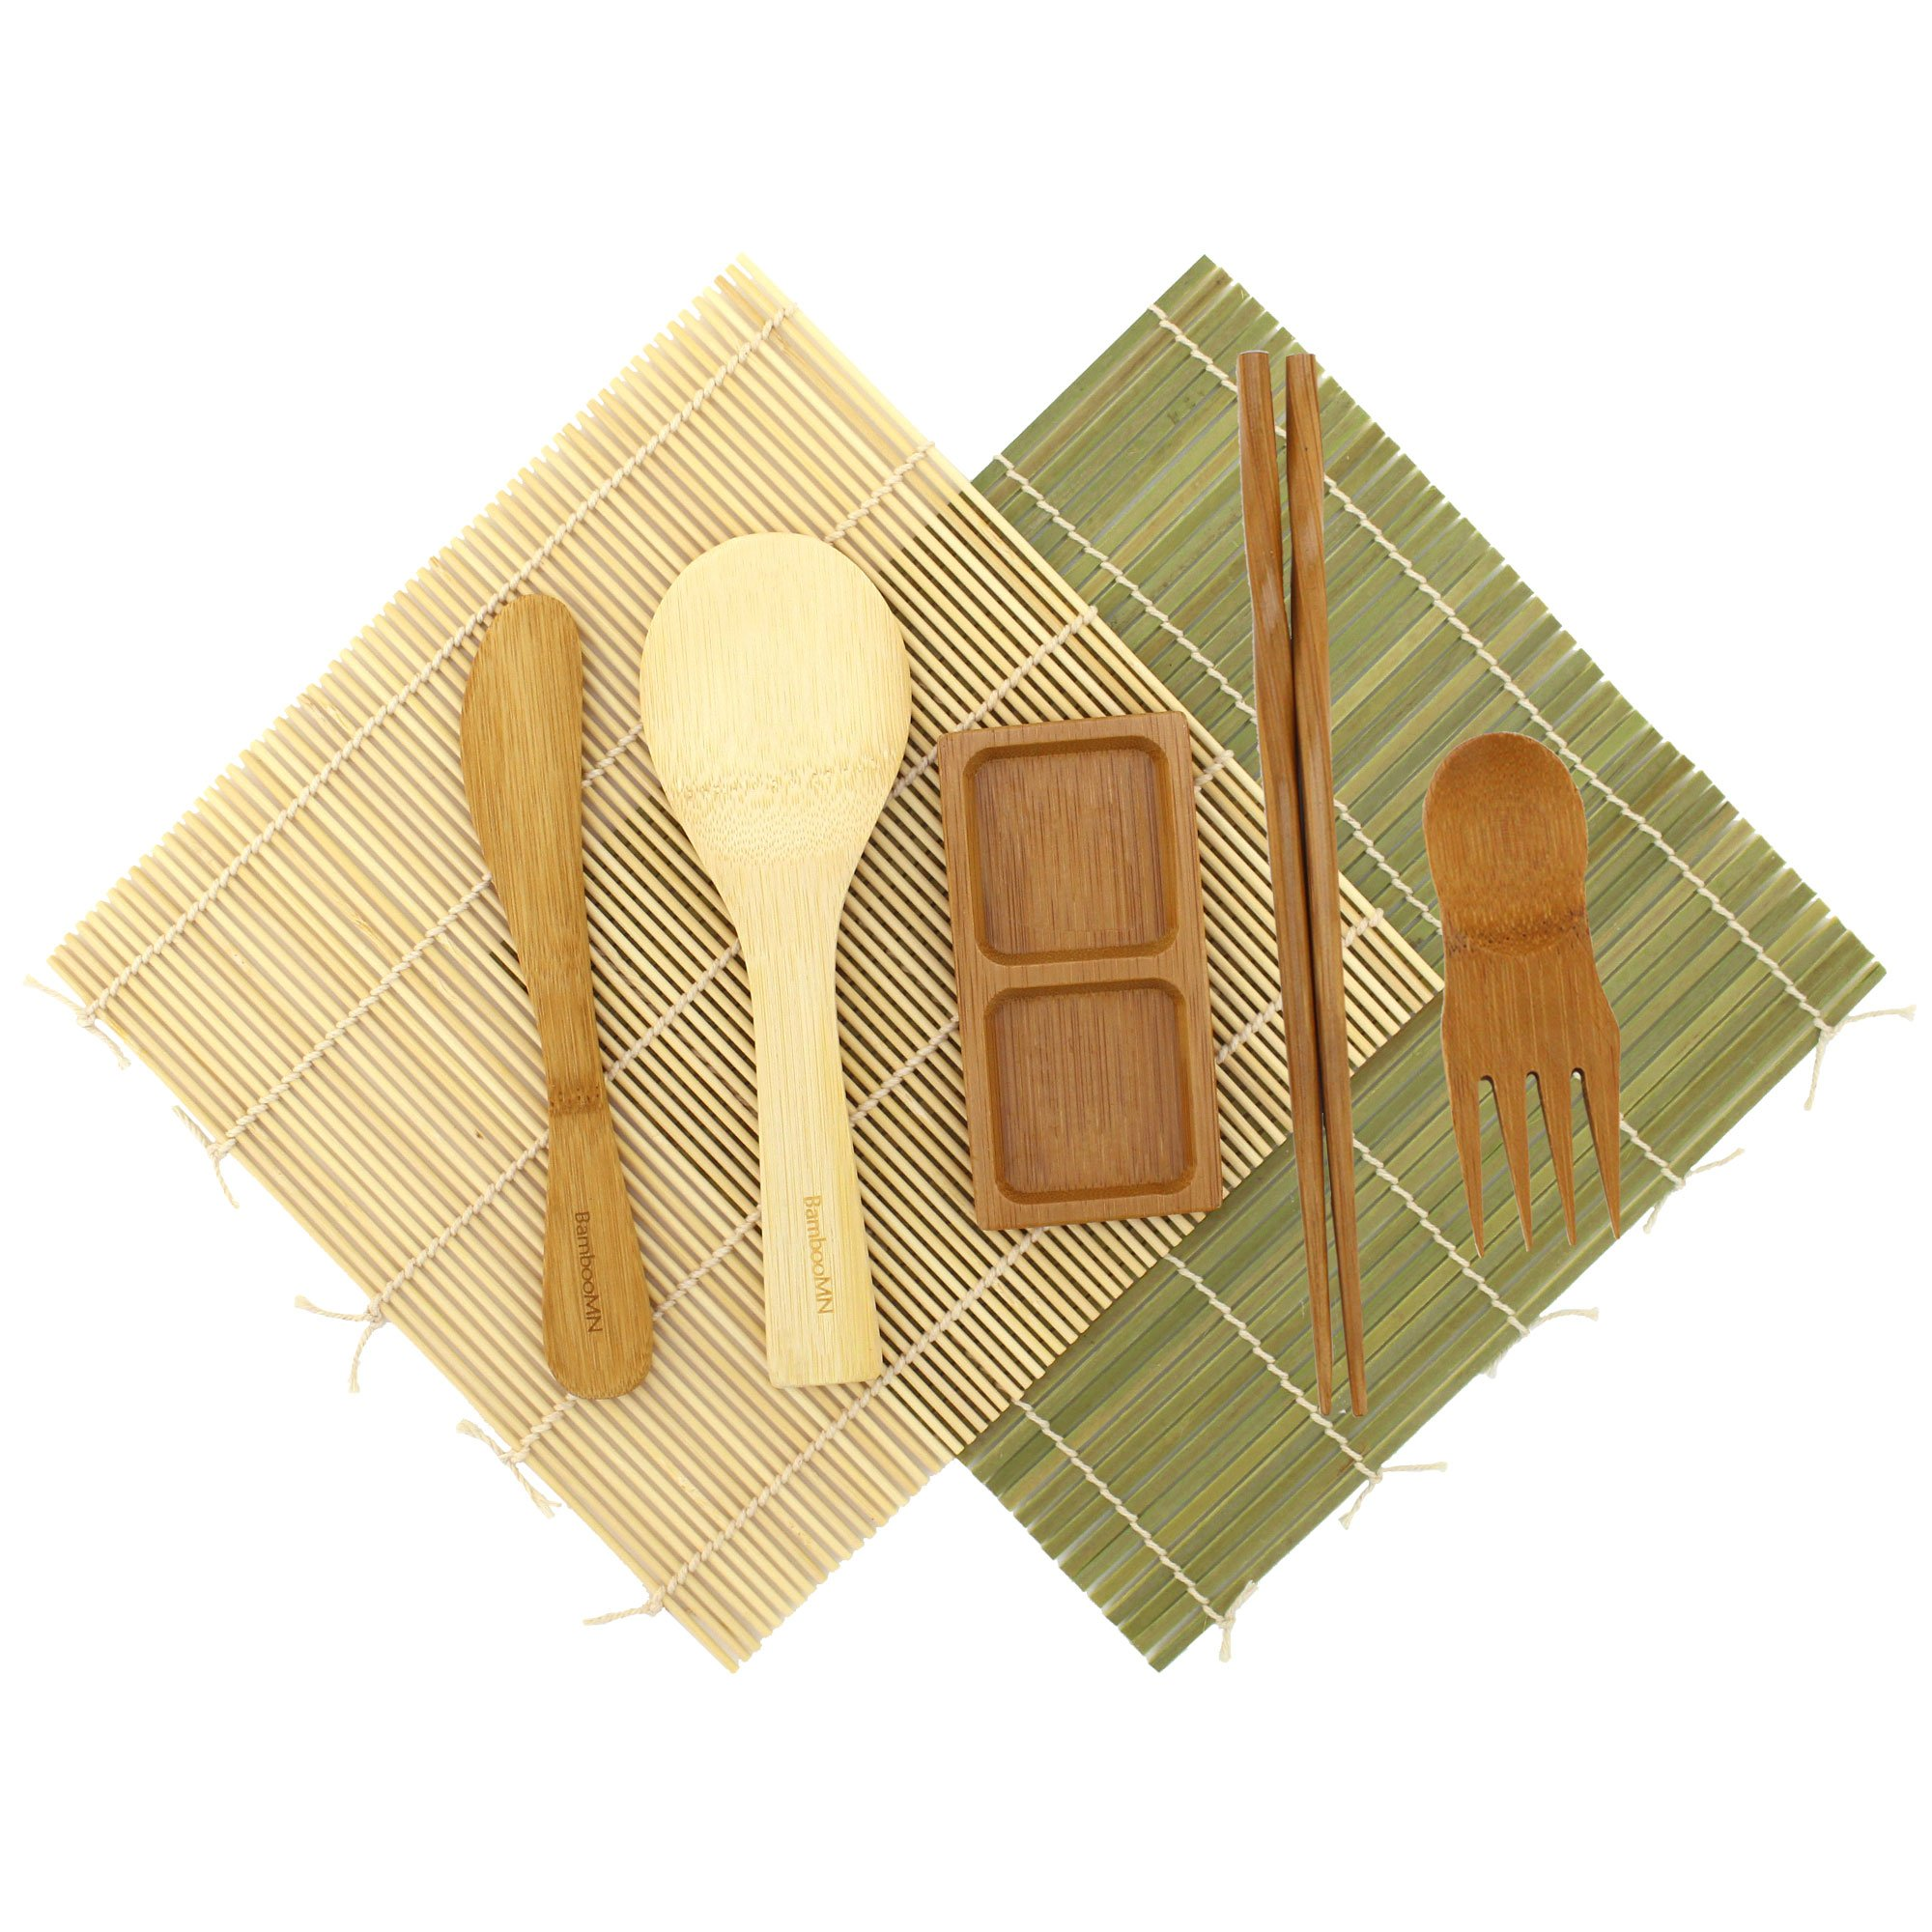 BambooMN Sushi Maker Kit - 2 Sets of Green and Natural Sushi Rolling Mats, Rice Paddle, Spreader, Chopsticks, Sushi Sauce Dish, and Free Spork - Deluxe Sushi Set